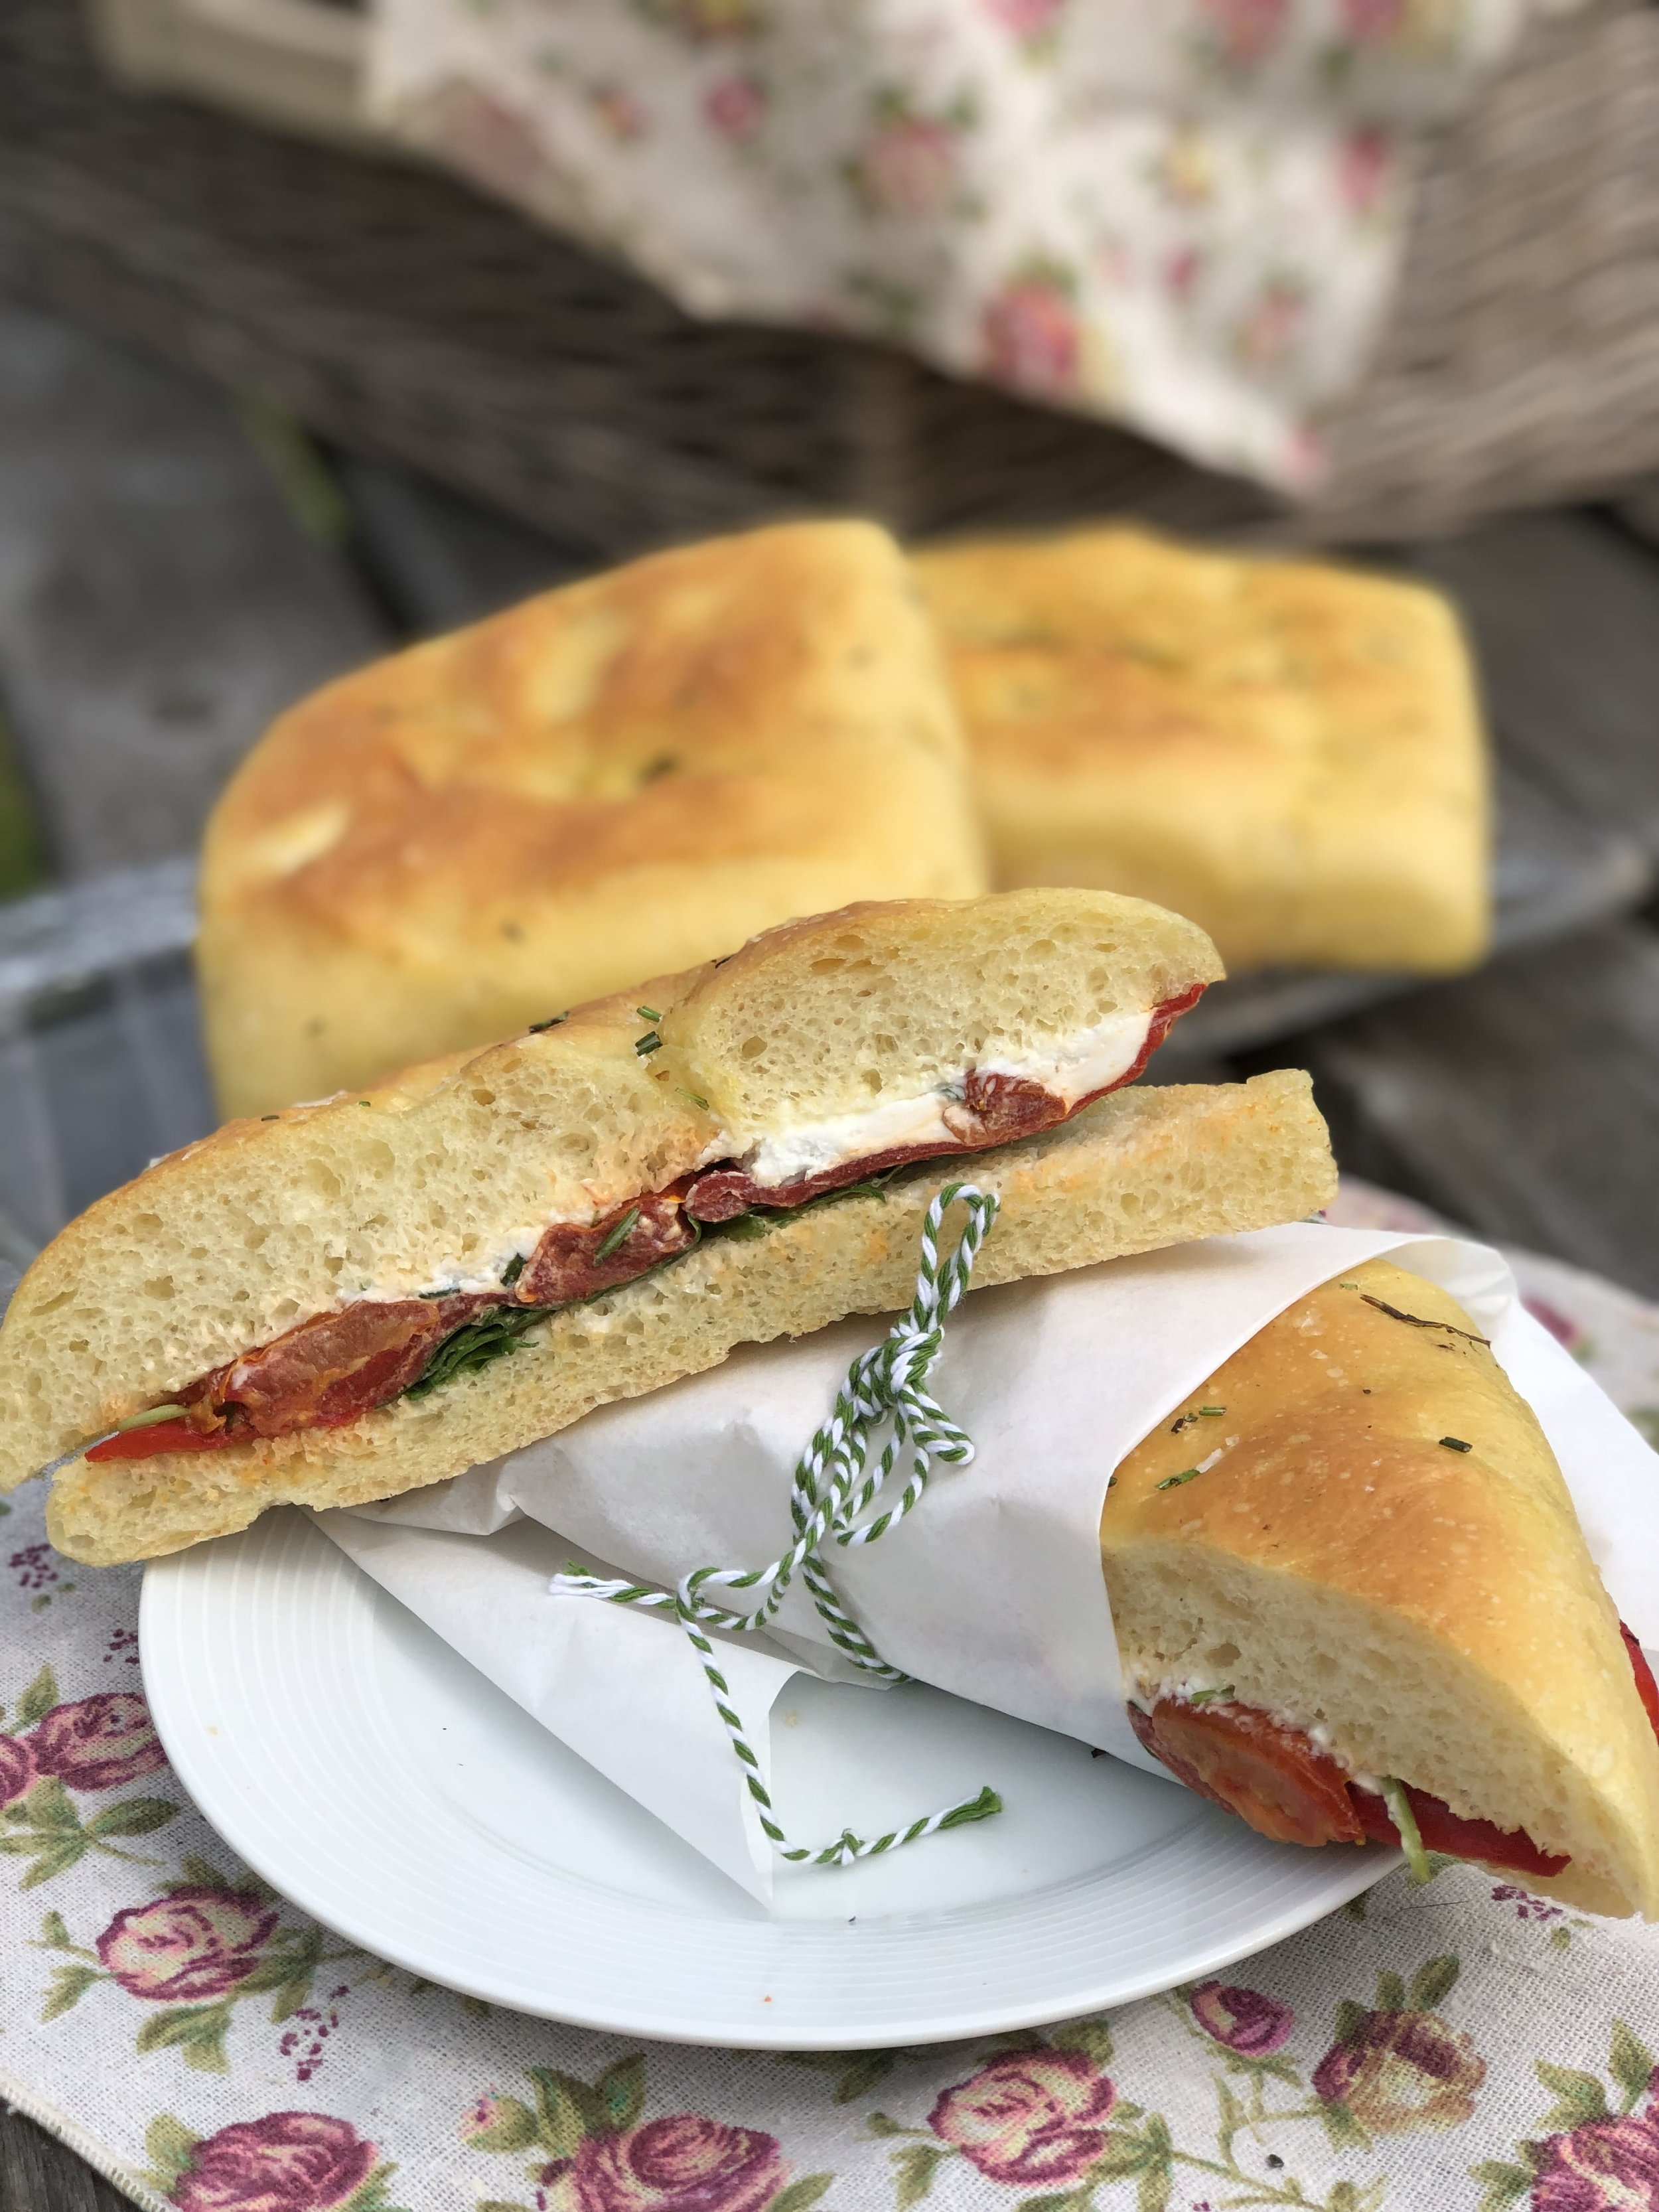 Hambleton_bakery_sandwiches_focaccia.JPEG